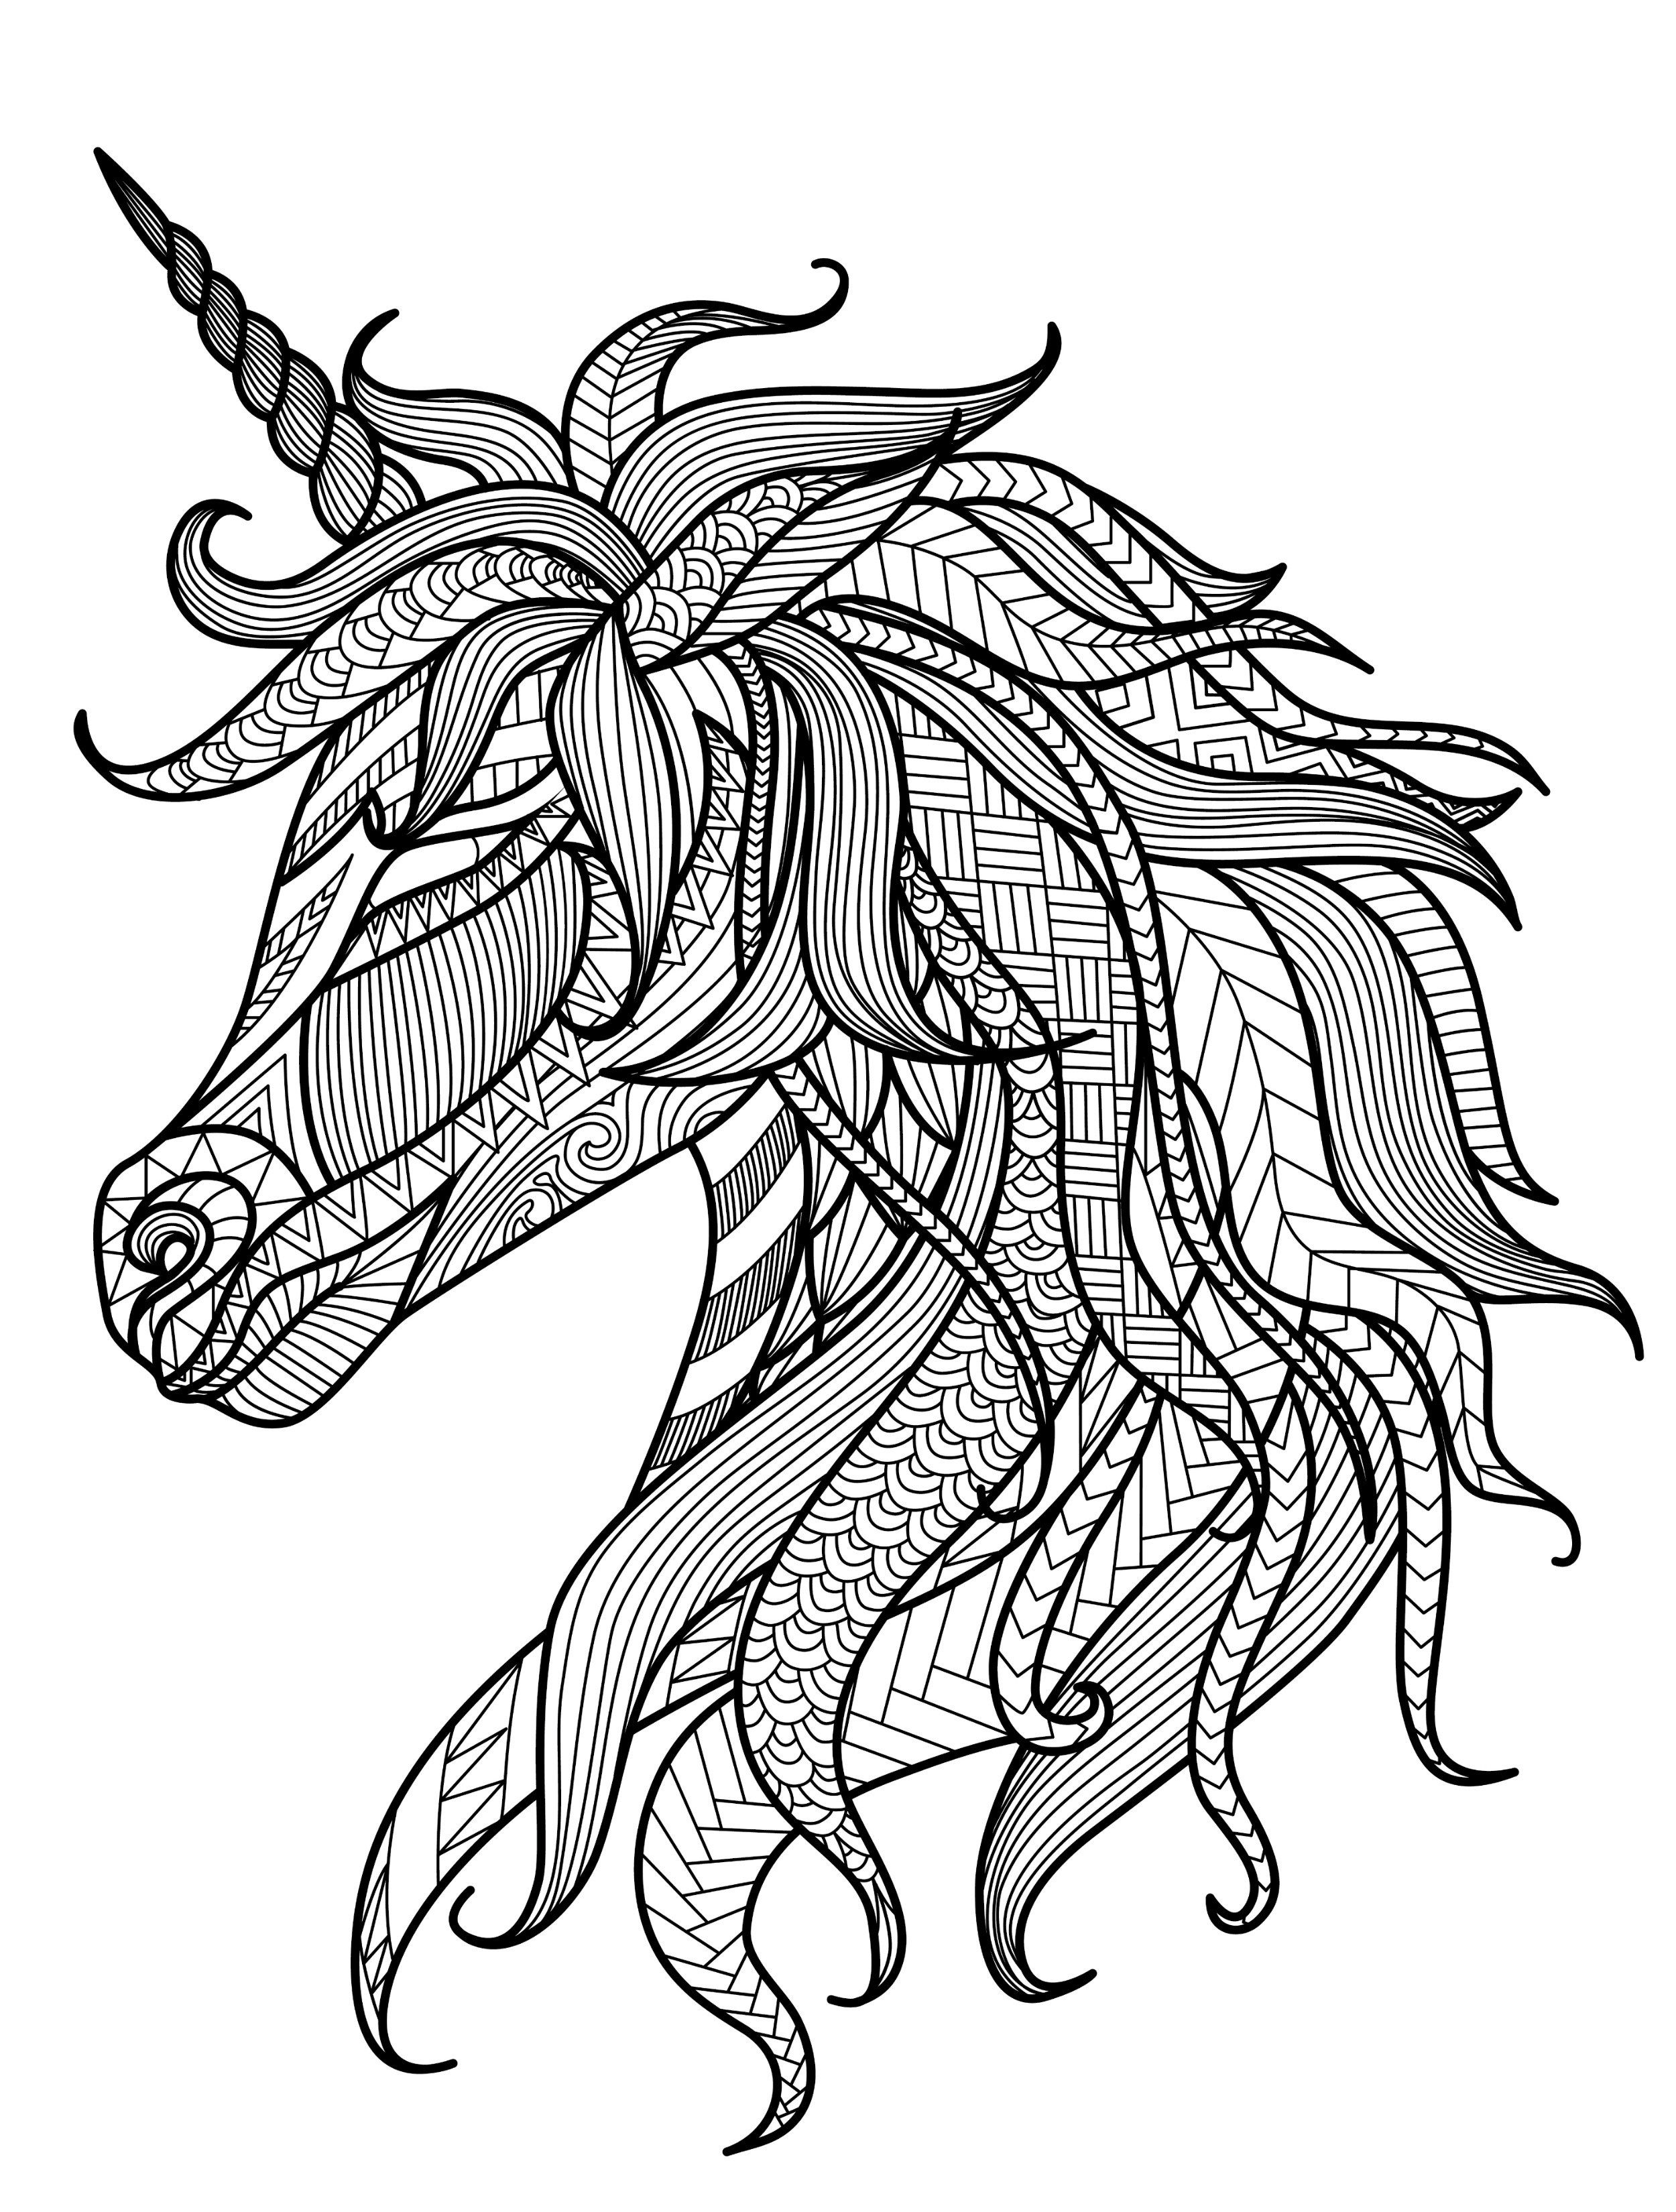 Unicorn Coloring Pages For Adults Best Coloring Pages For Kids Unicorn Coloring Pages Horse Coloring Pages Coloring Pages